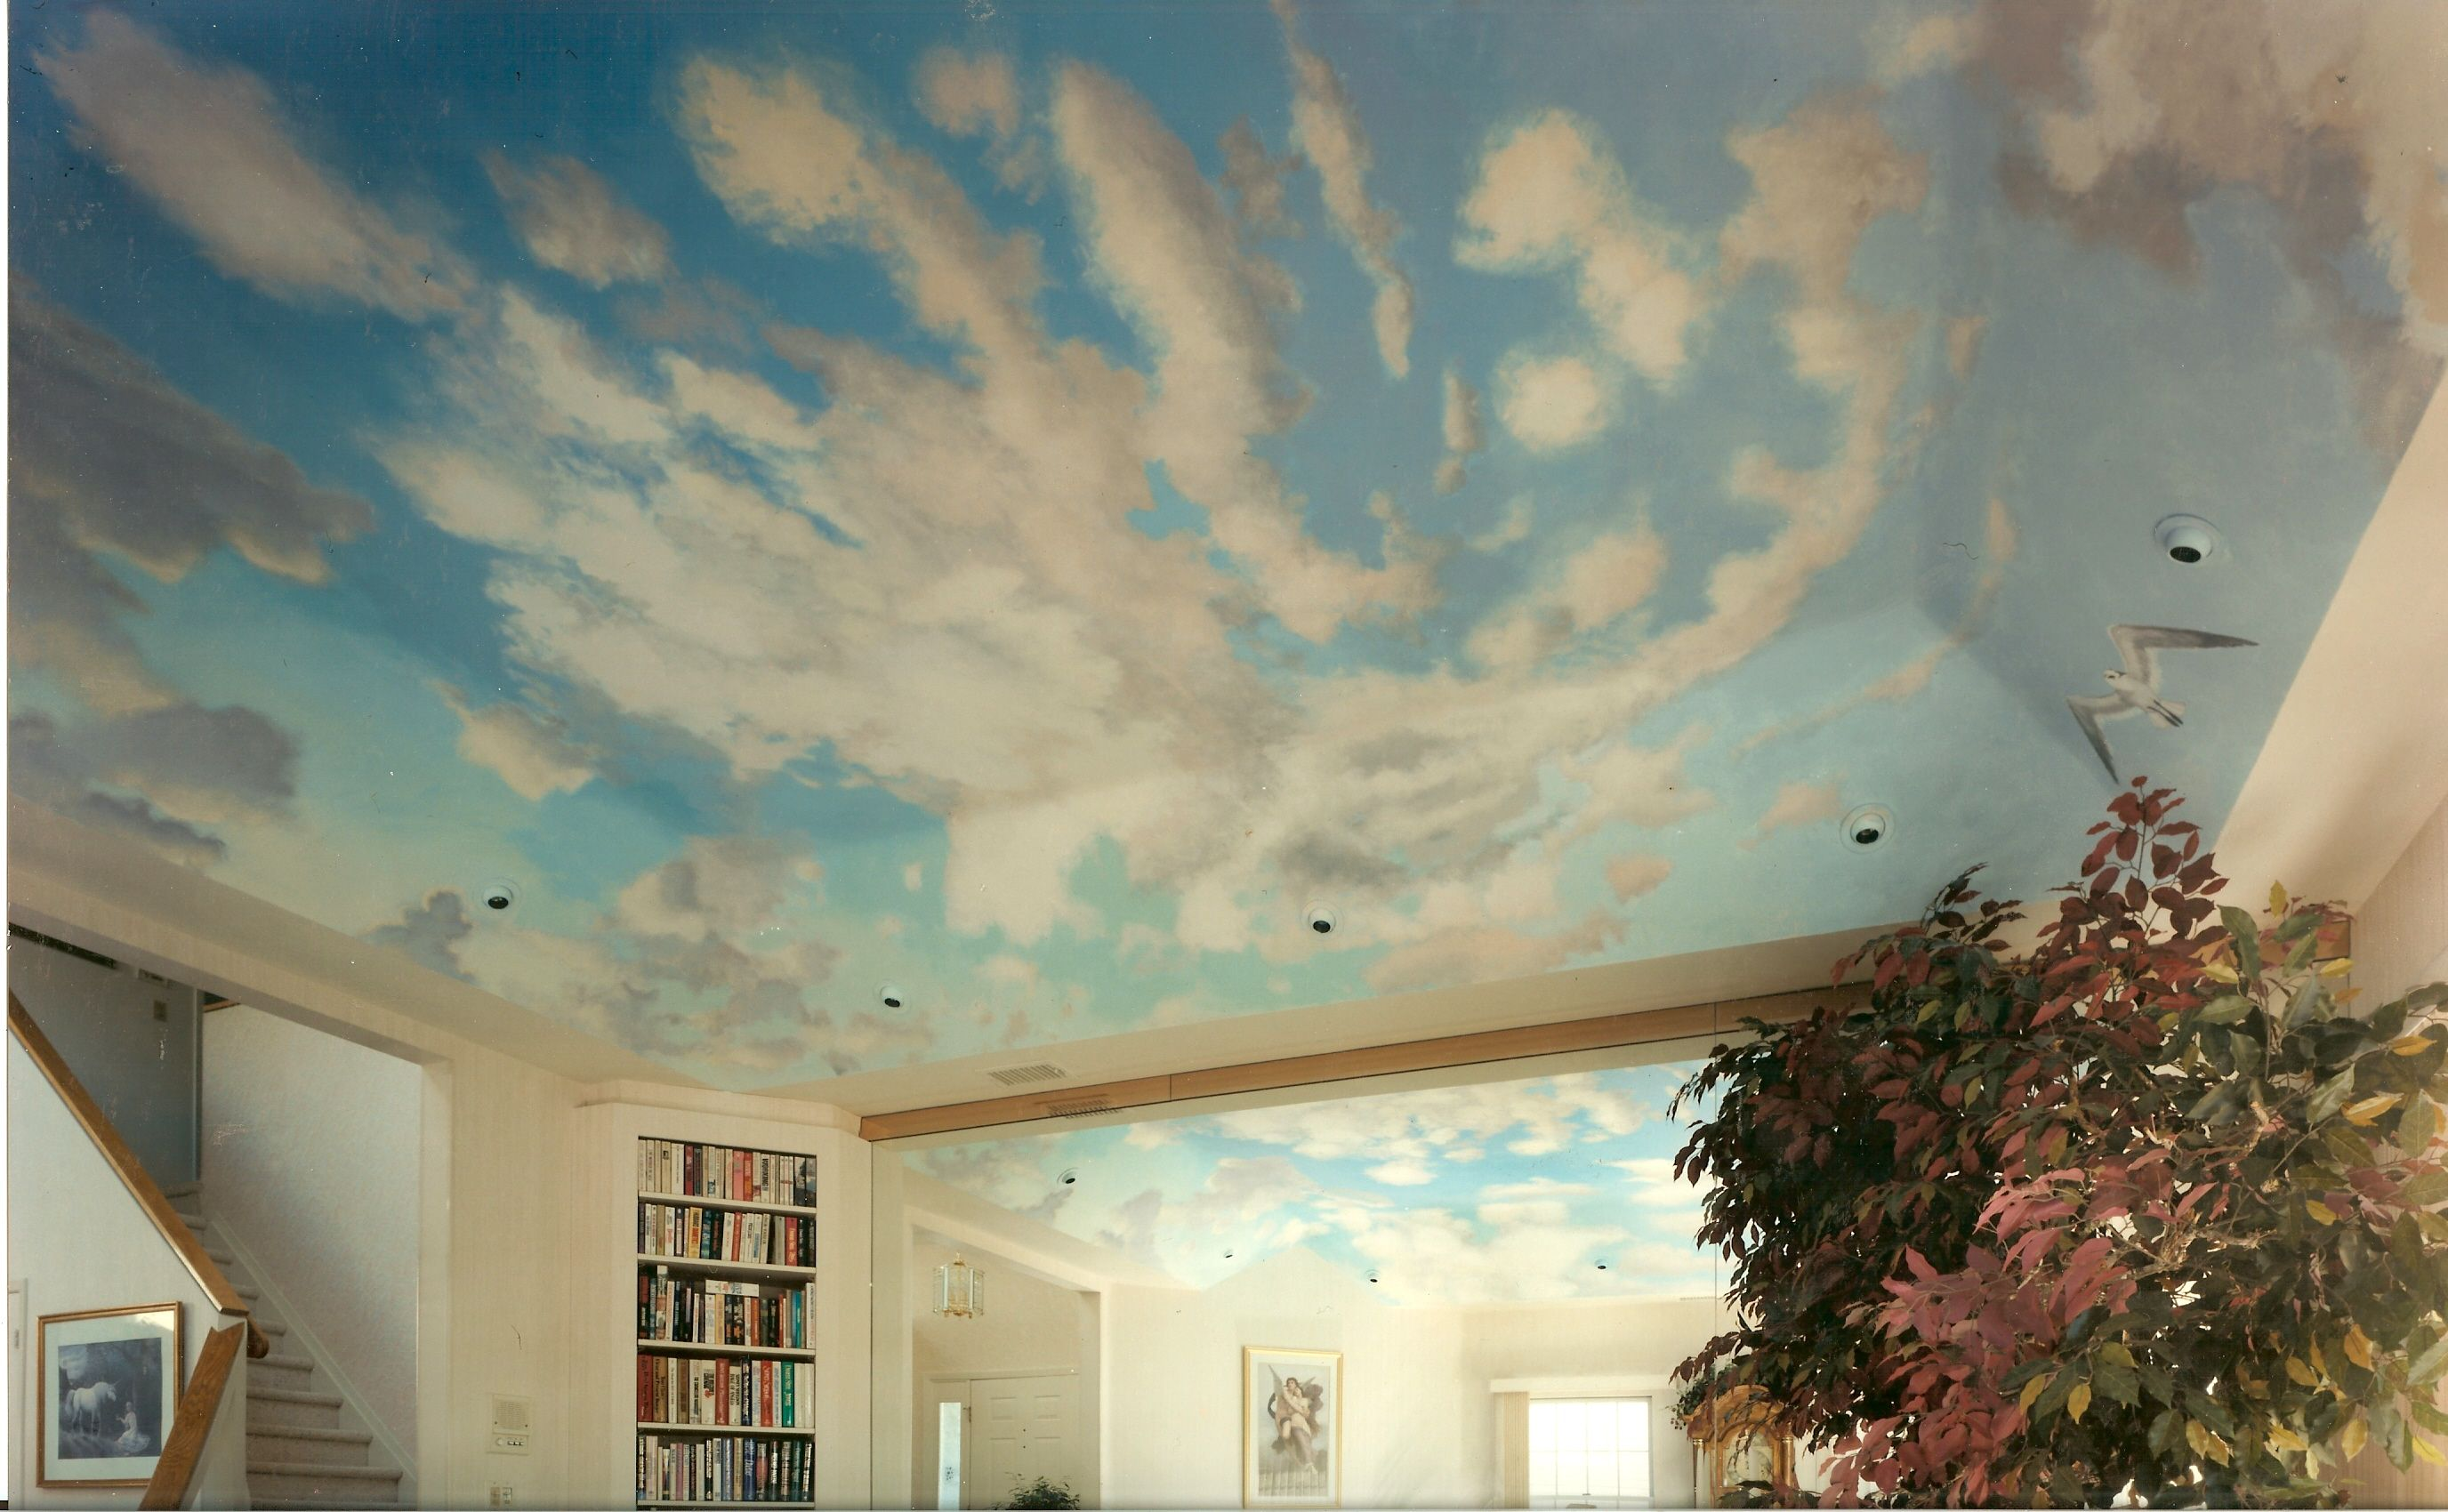 Ceiling mural for livingroom oyster bay ny houses for Ceiling sky mural